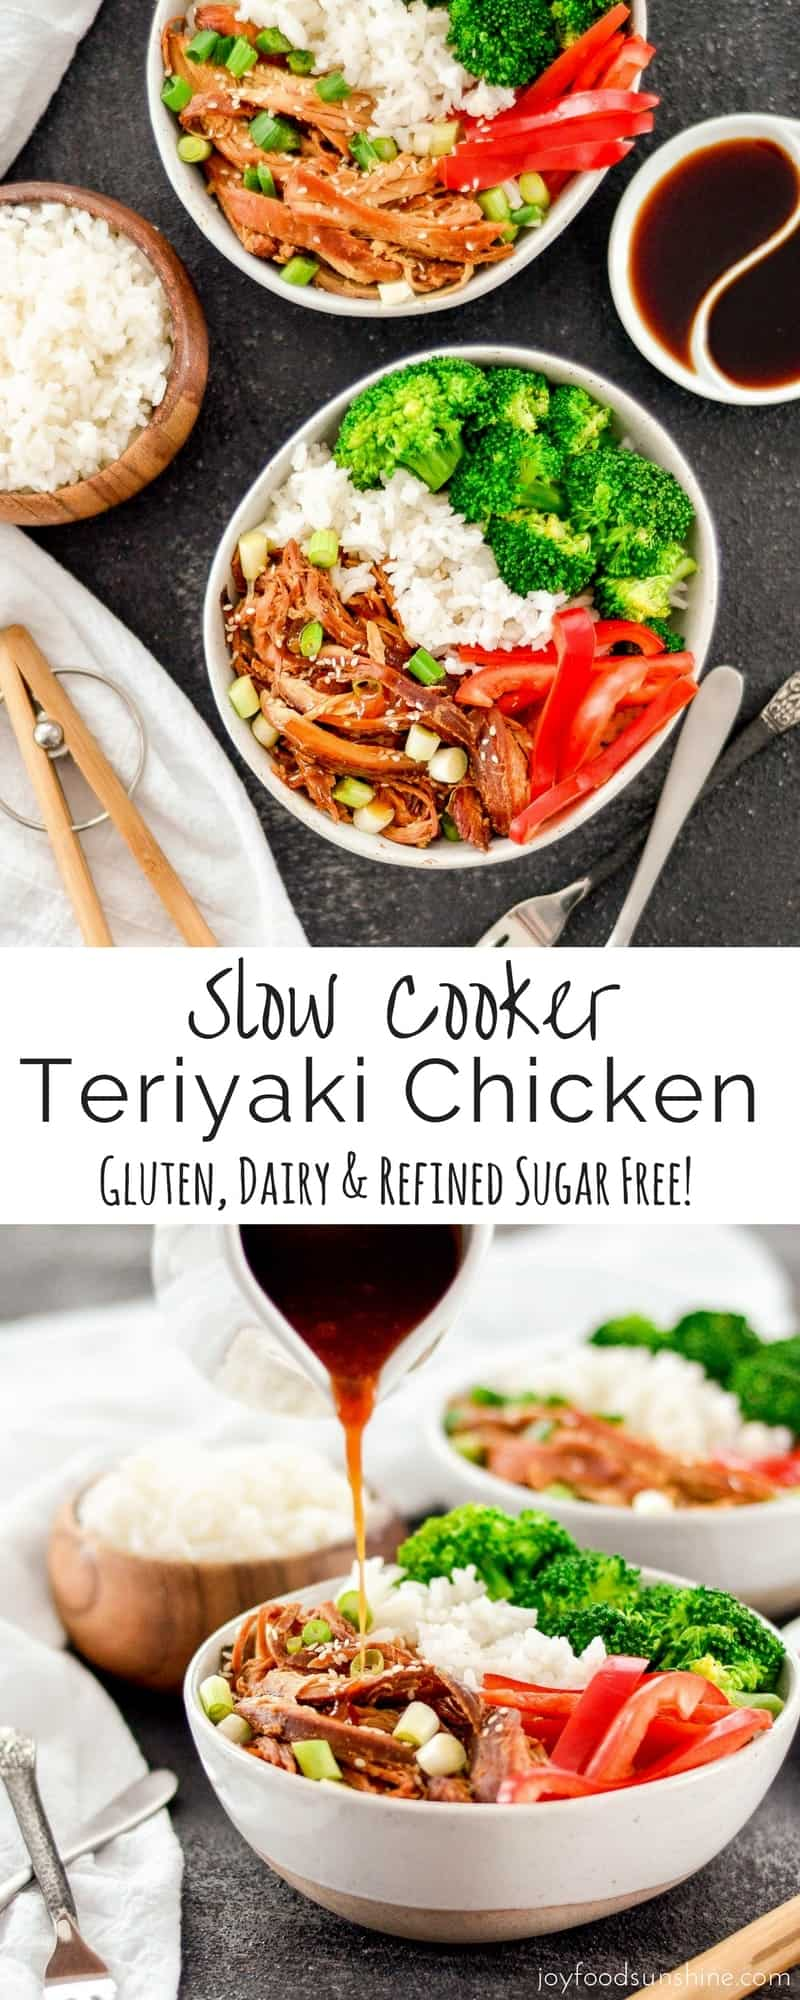 This Slow Cooker Teriyaki Chicken is an easy recipe perfect for busy weeknights! Serve with stir-fried veggies and you have a delicious and healthy dinner! Gluten-free, dairy-free and refined sugar free!